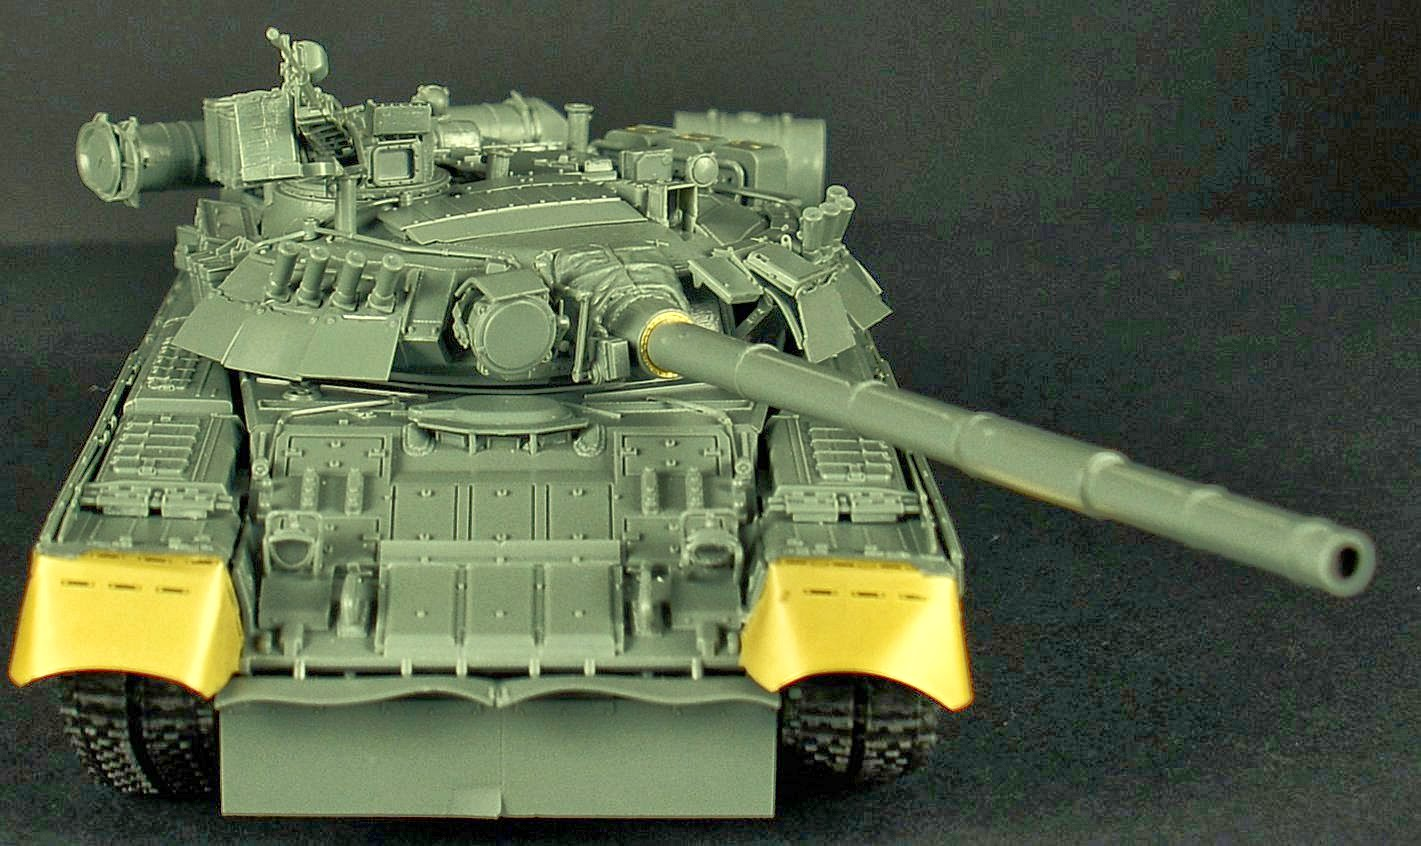 Review and build guide - Xact Scale Models 1/35th scale T-80U Soviet Main Battle Tank